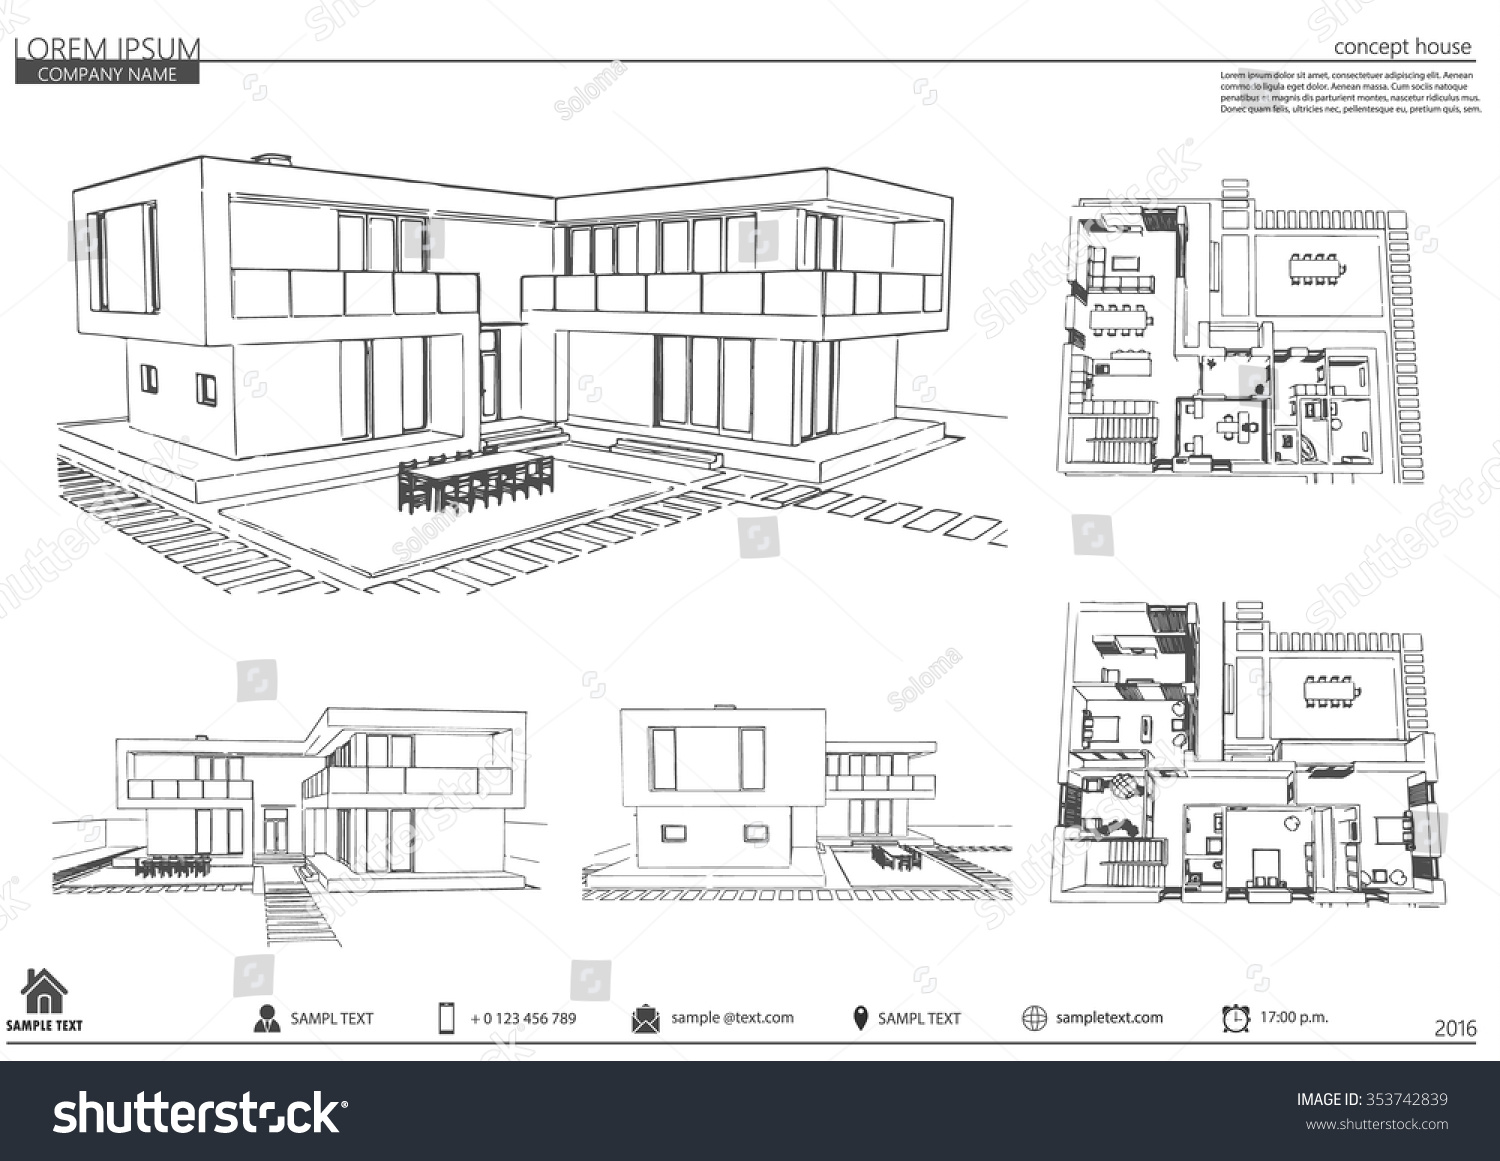 Wireframe blueprint drawing 3 d building vector stock vector wireframe blueprint drawing of 3d building vector architectural template background malvernweather Image collections